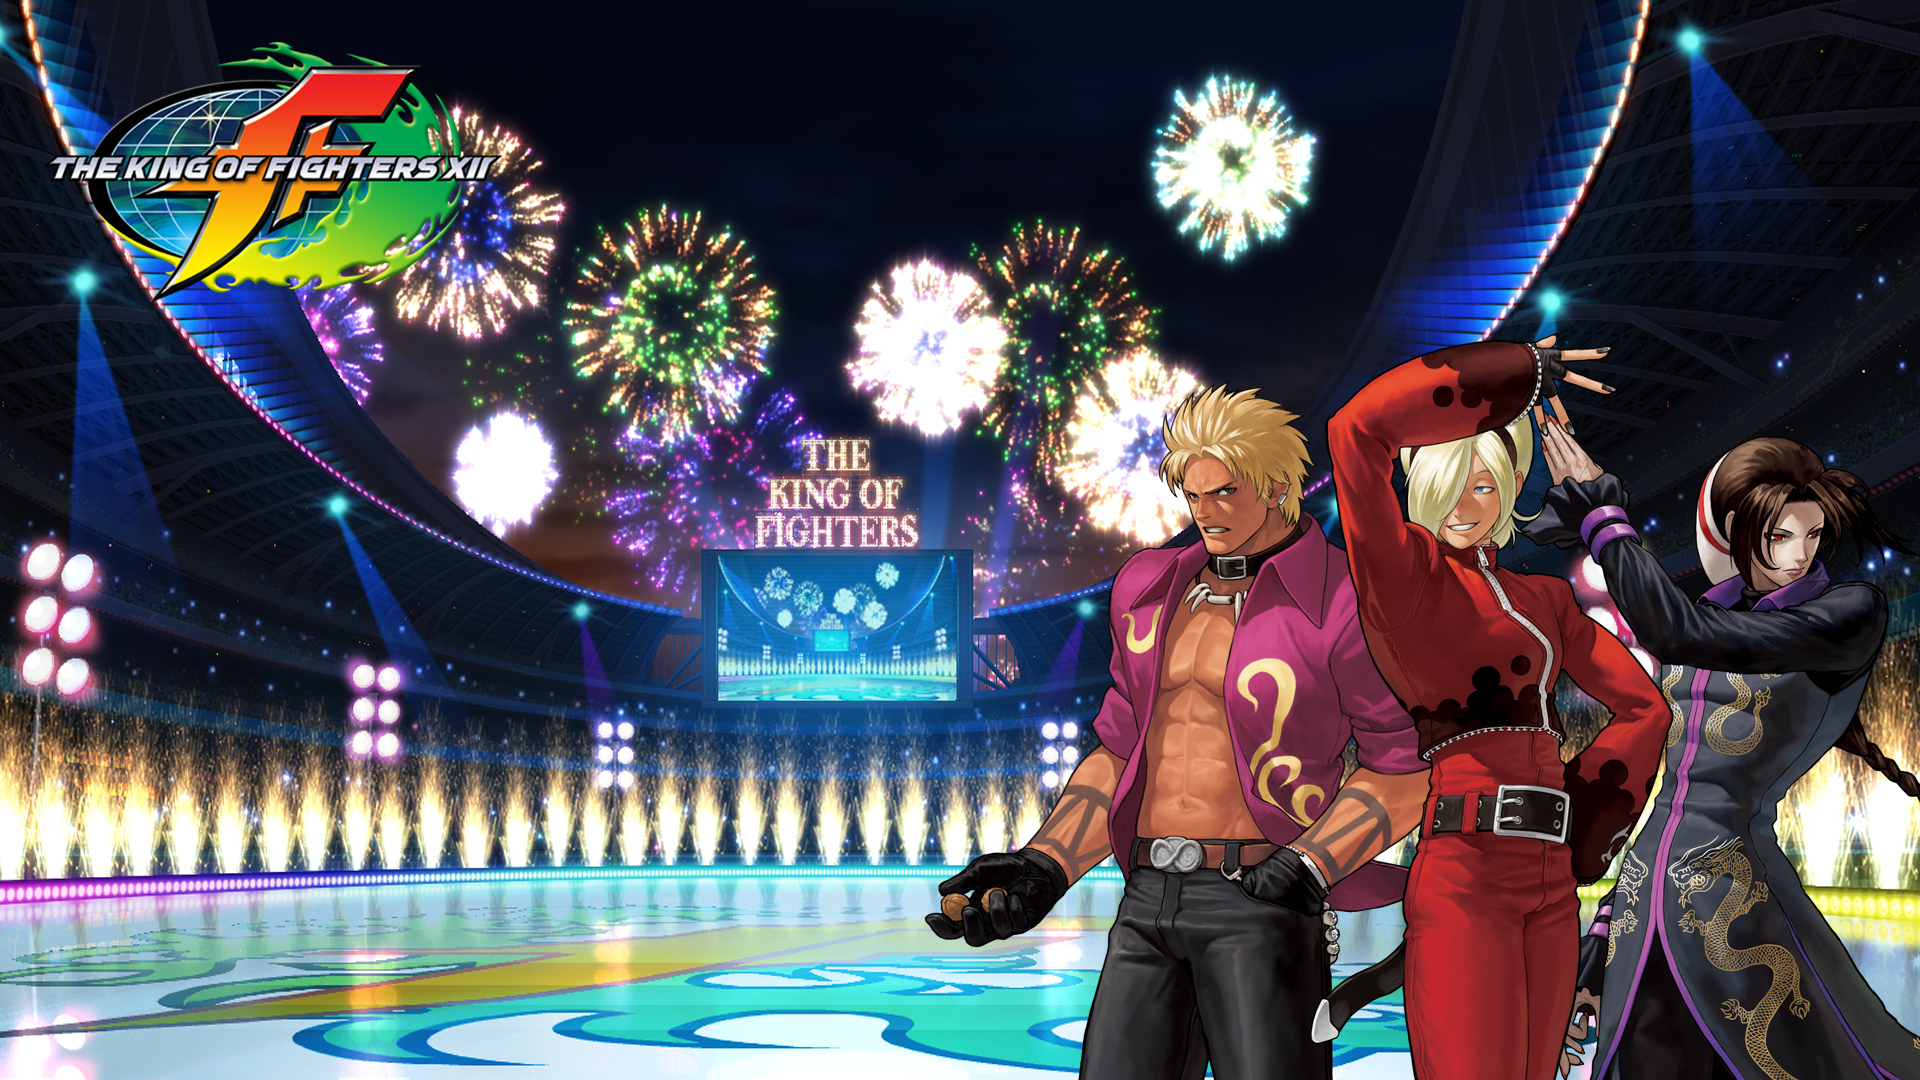 The King of Fighters KOF XII hero team BG